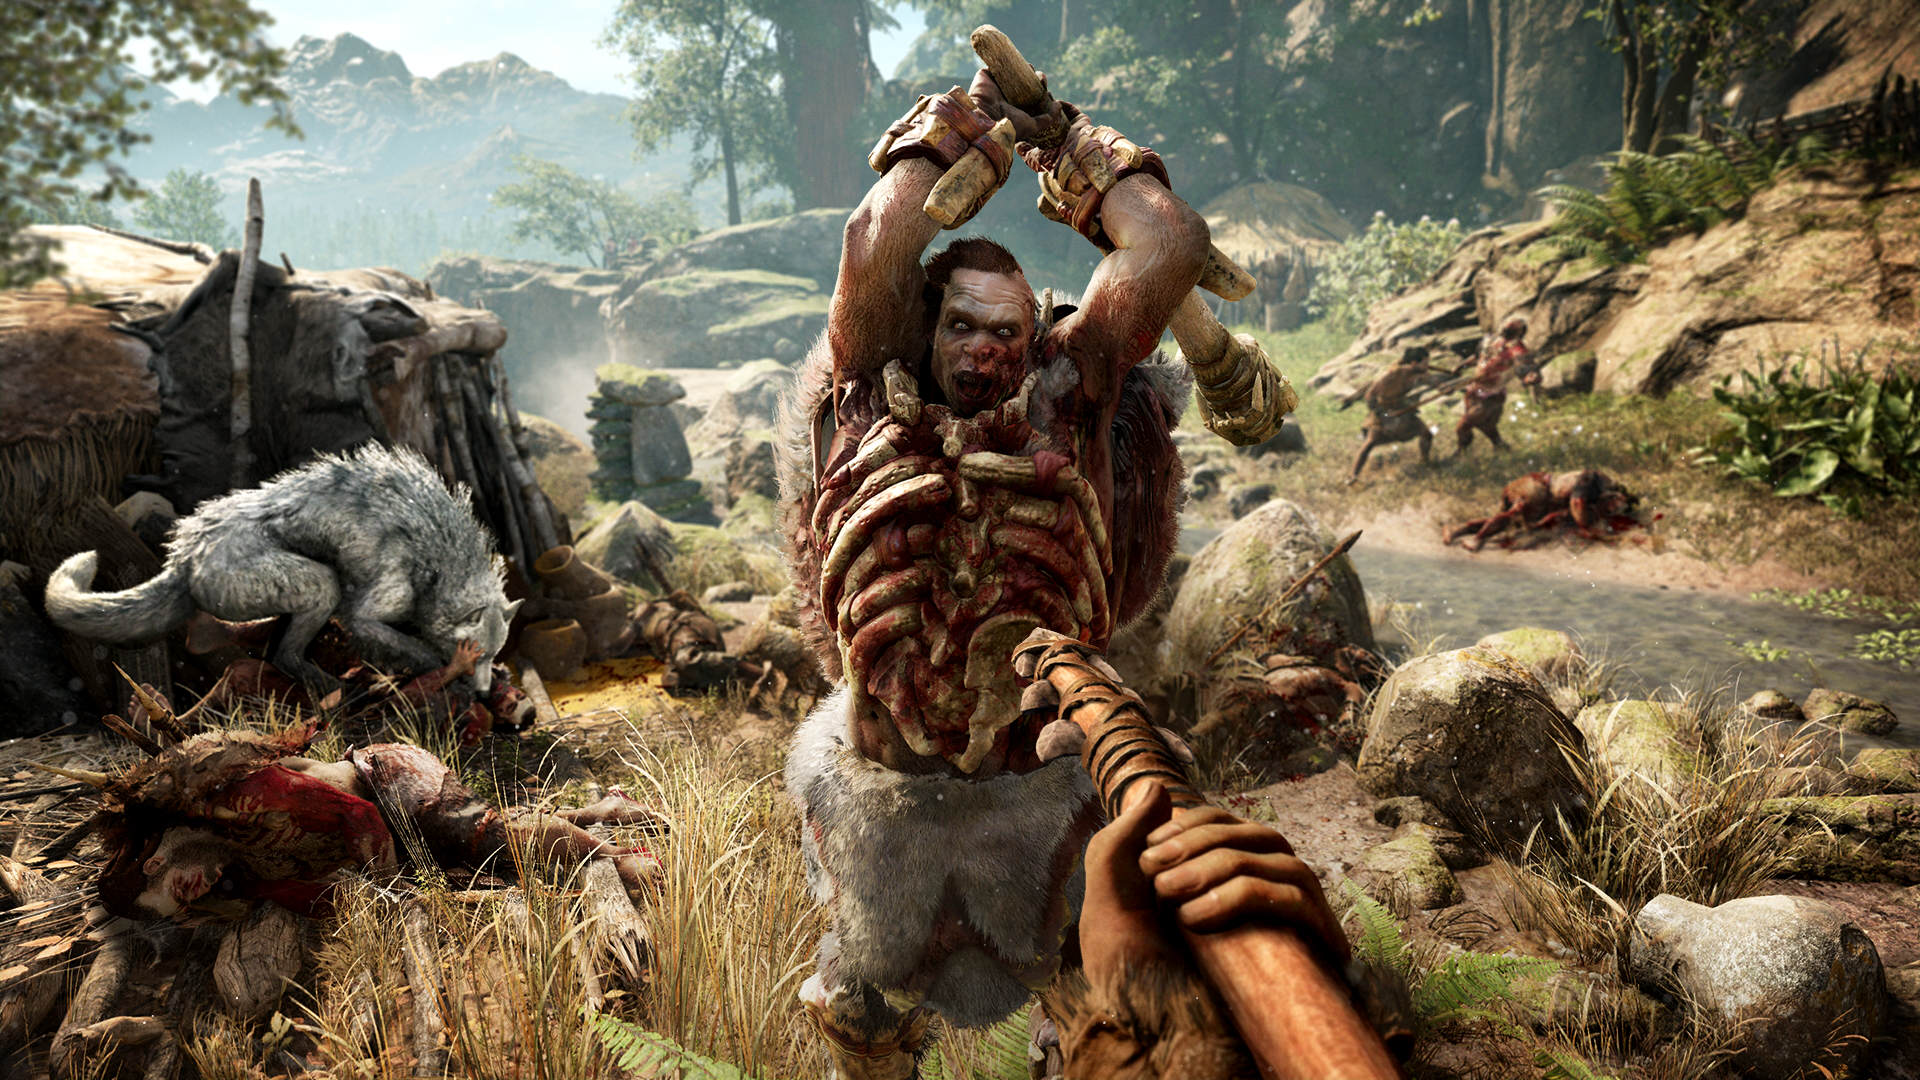 3007167 fcp 09 udam attack screenshots preview pr 160126 6pm cet 1453716692 Far Cry Primal Introducing Intense New Challenge In April